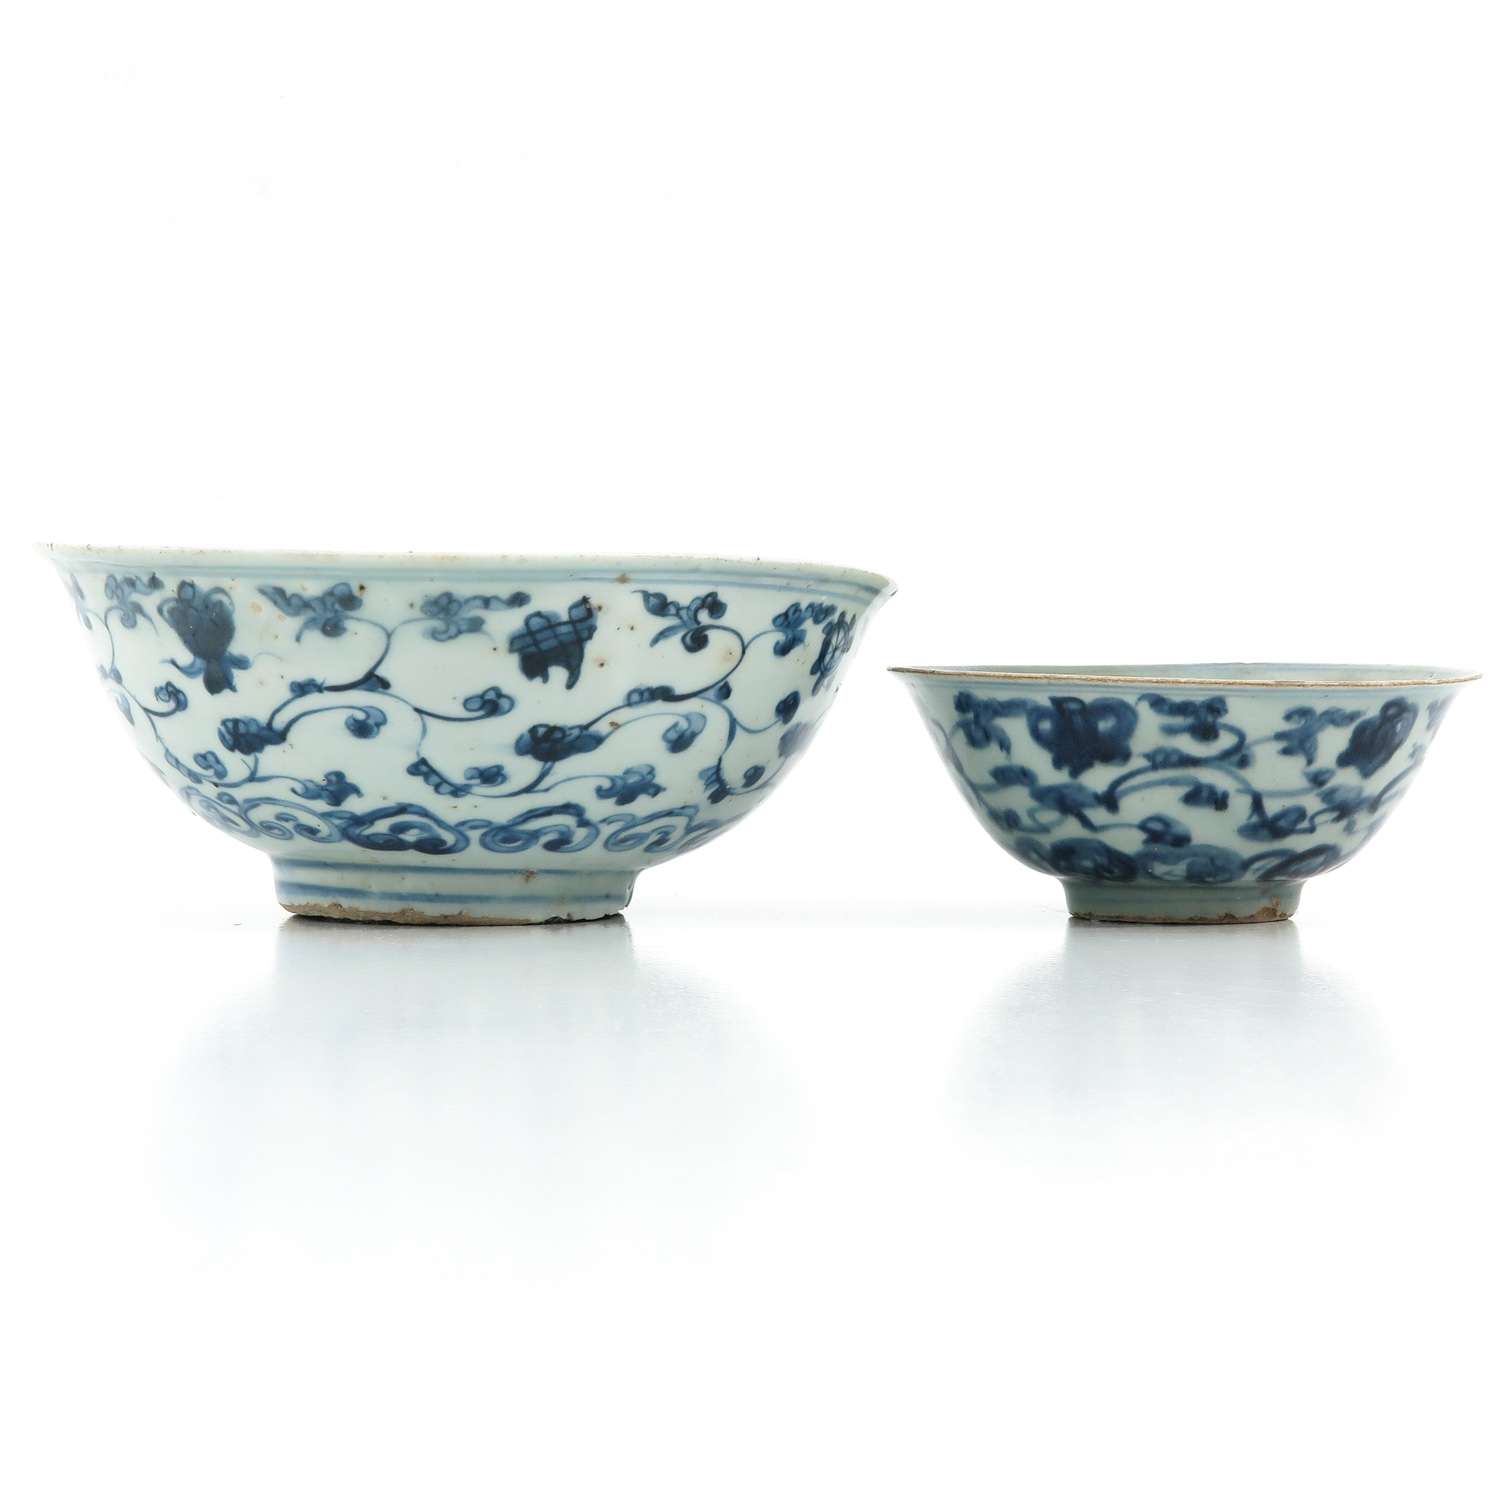 A Lot of 2 Blue and White Bowls - Image 2 of 10